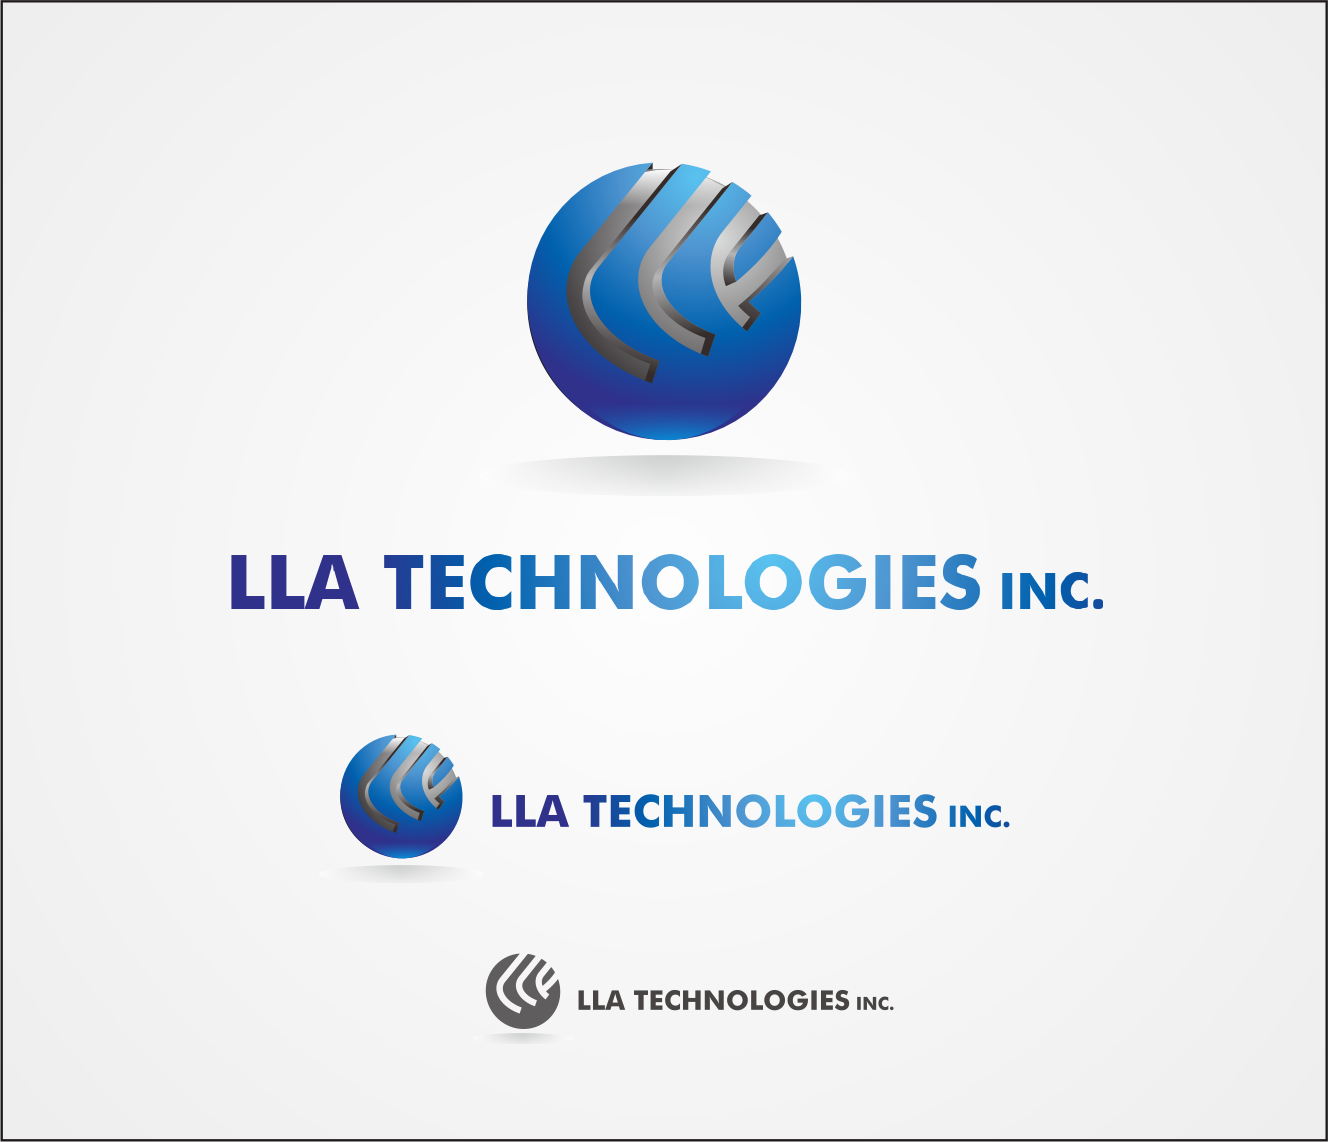 Logo Design by Armada Jamaluddin - Entry No. 152 in the Logo Design Contest Inspiring Logo Design for LLA Technologies Inc..